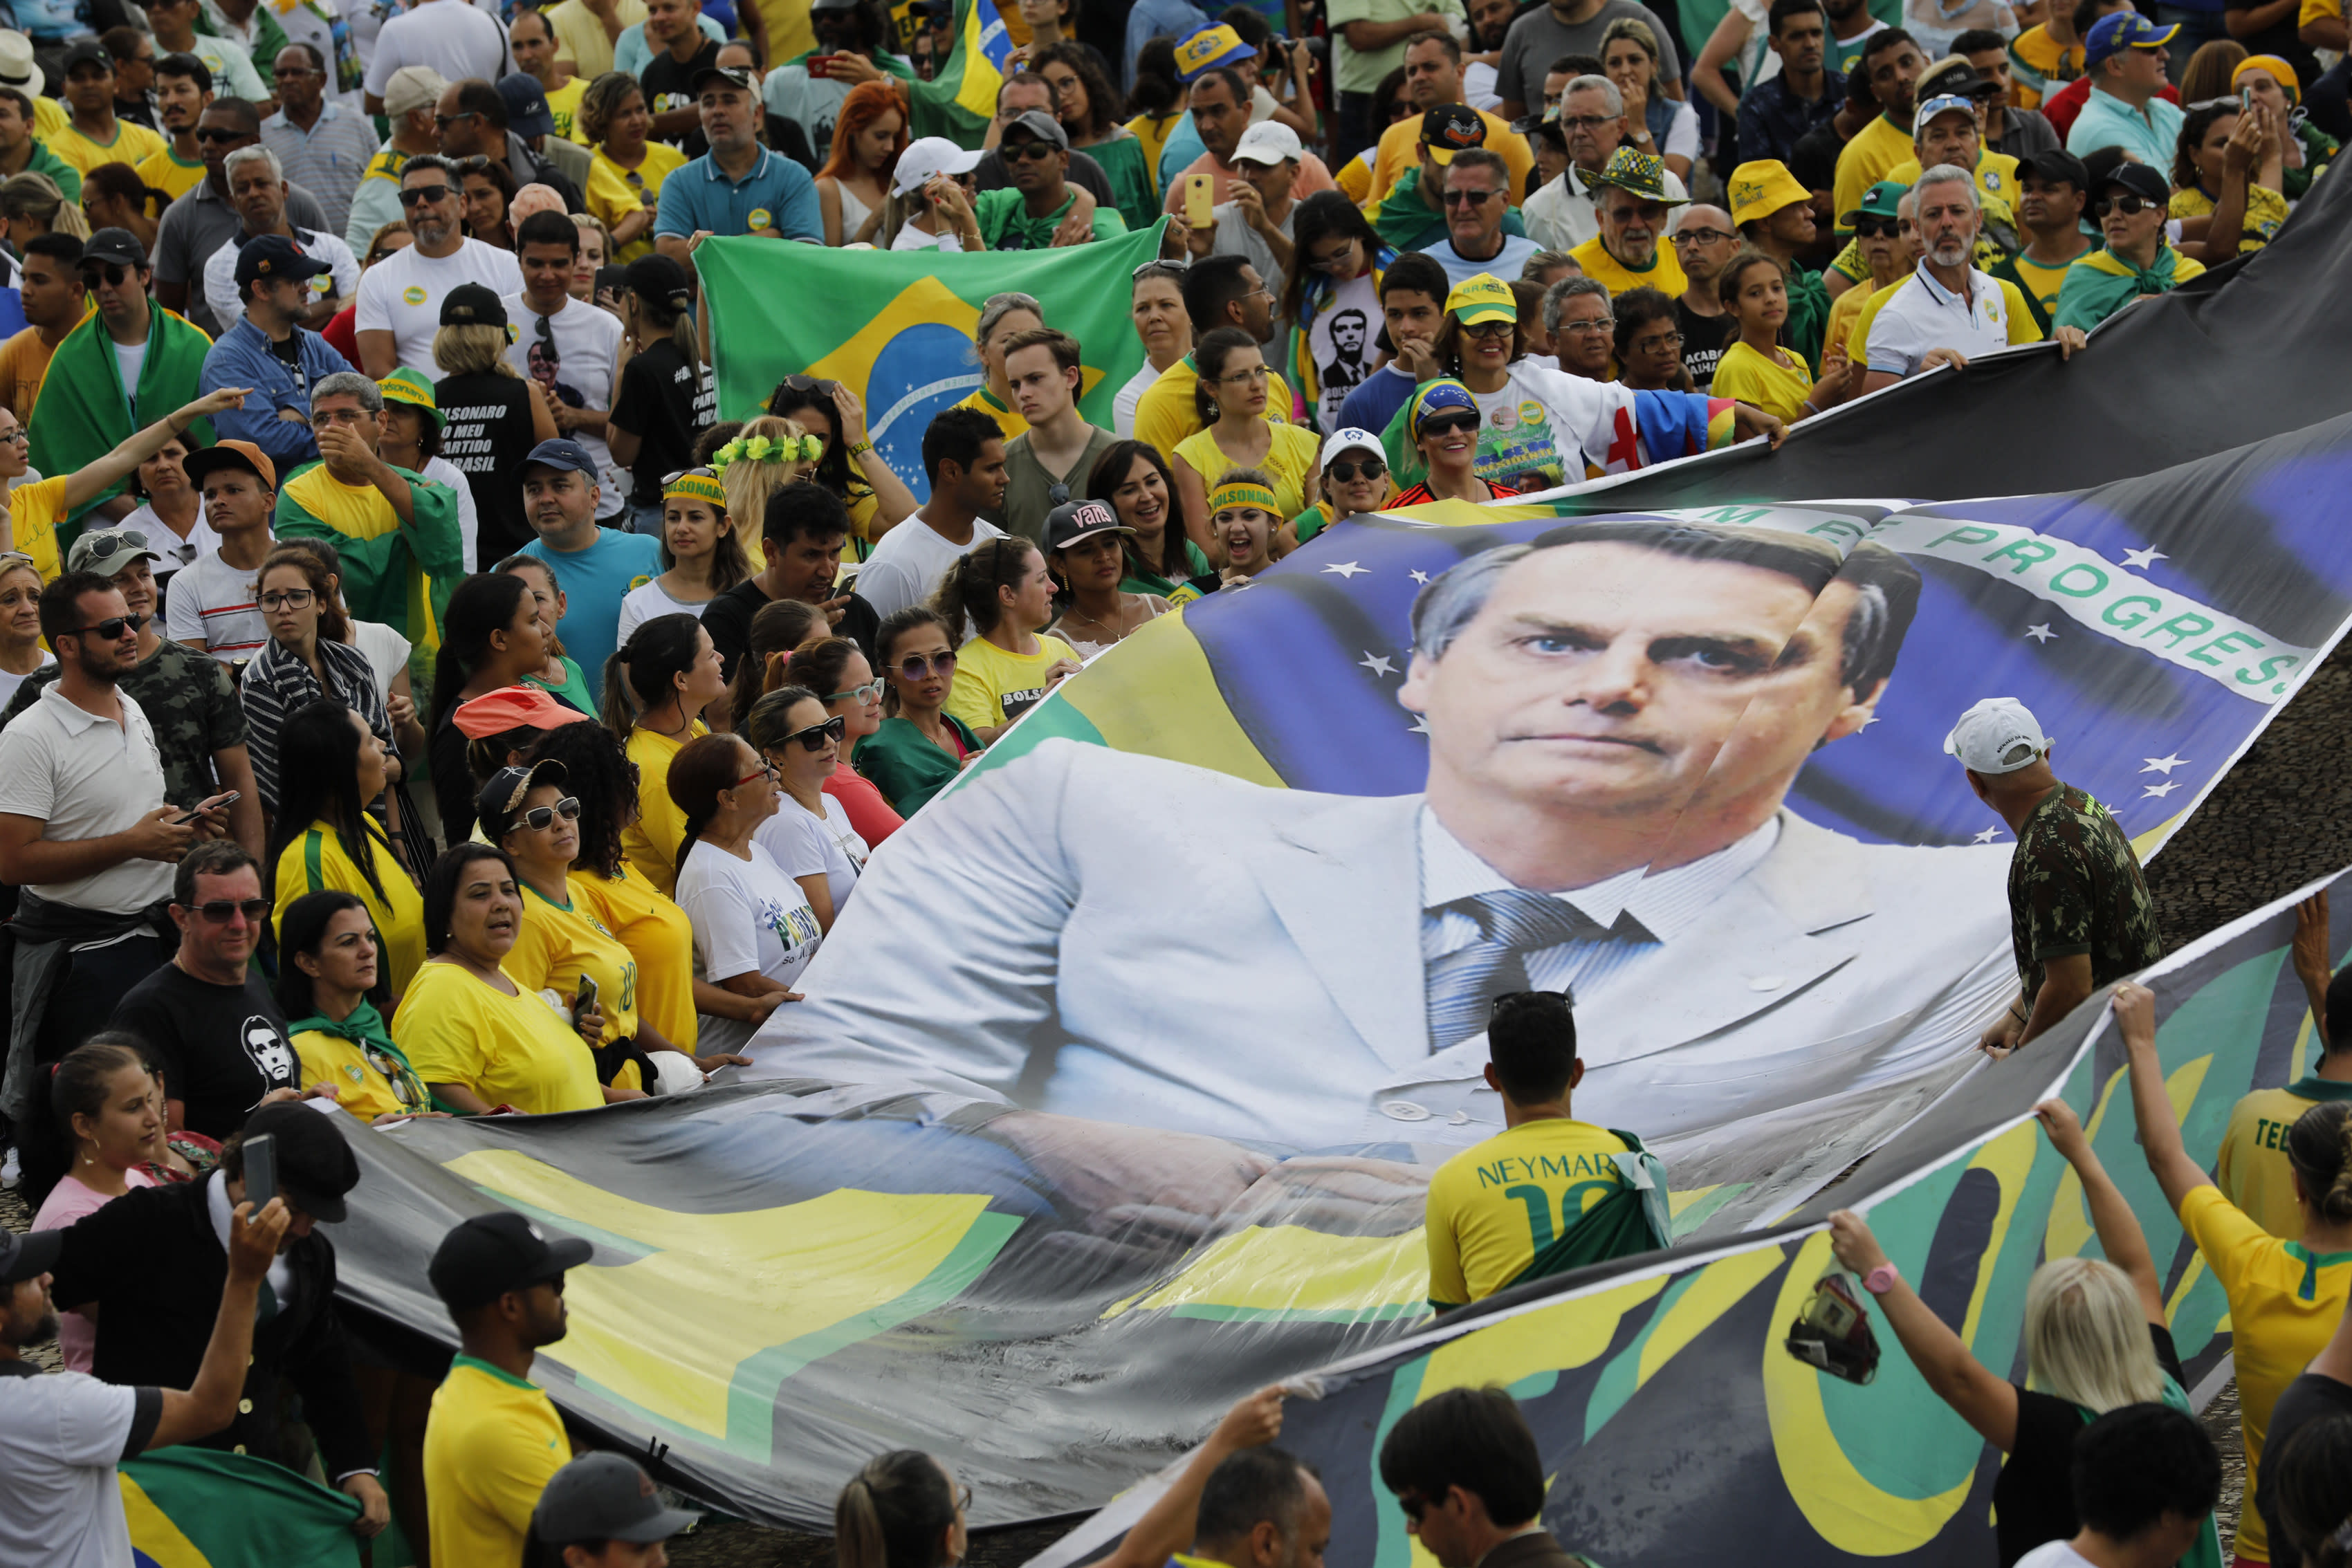 In this Tuesday, Jan. 1, 2019 photo, supporters of Brazil's new President Jair Bolsonaro display a giant banner of him on his inauguration day in Brasilia, Brazil. (AP Photo/Silvia Izquierdo)